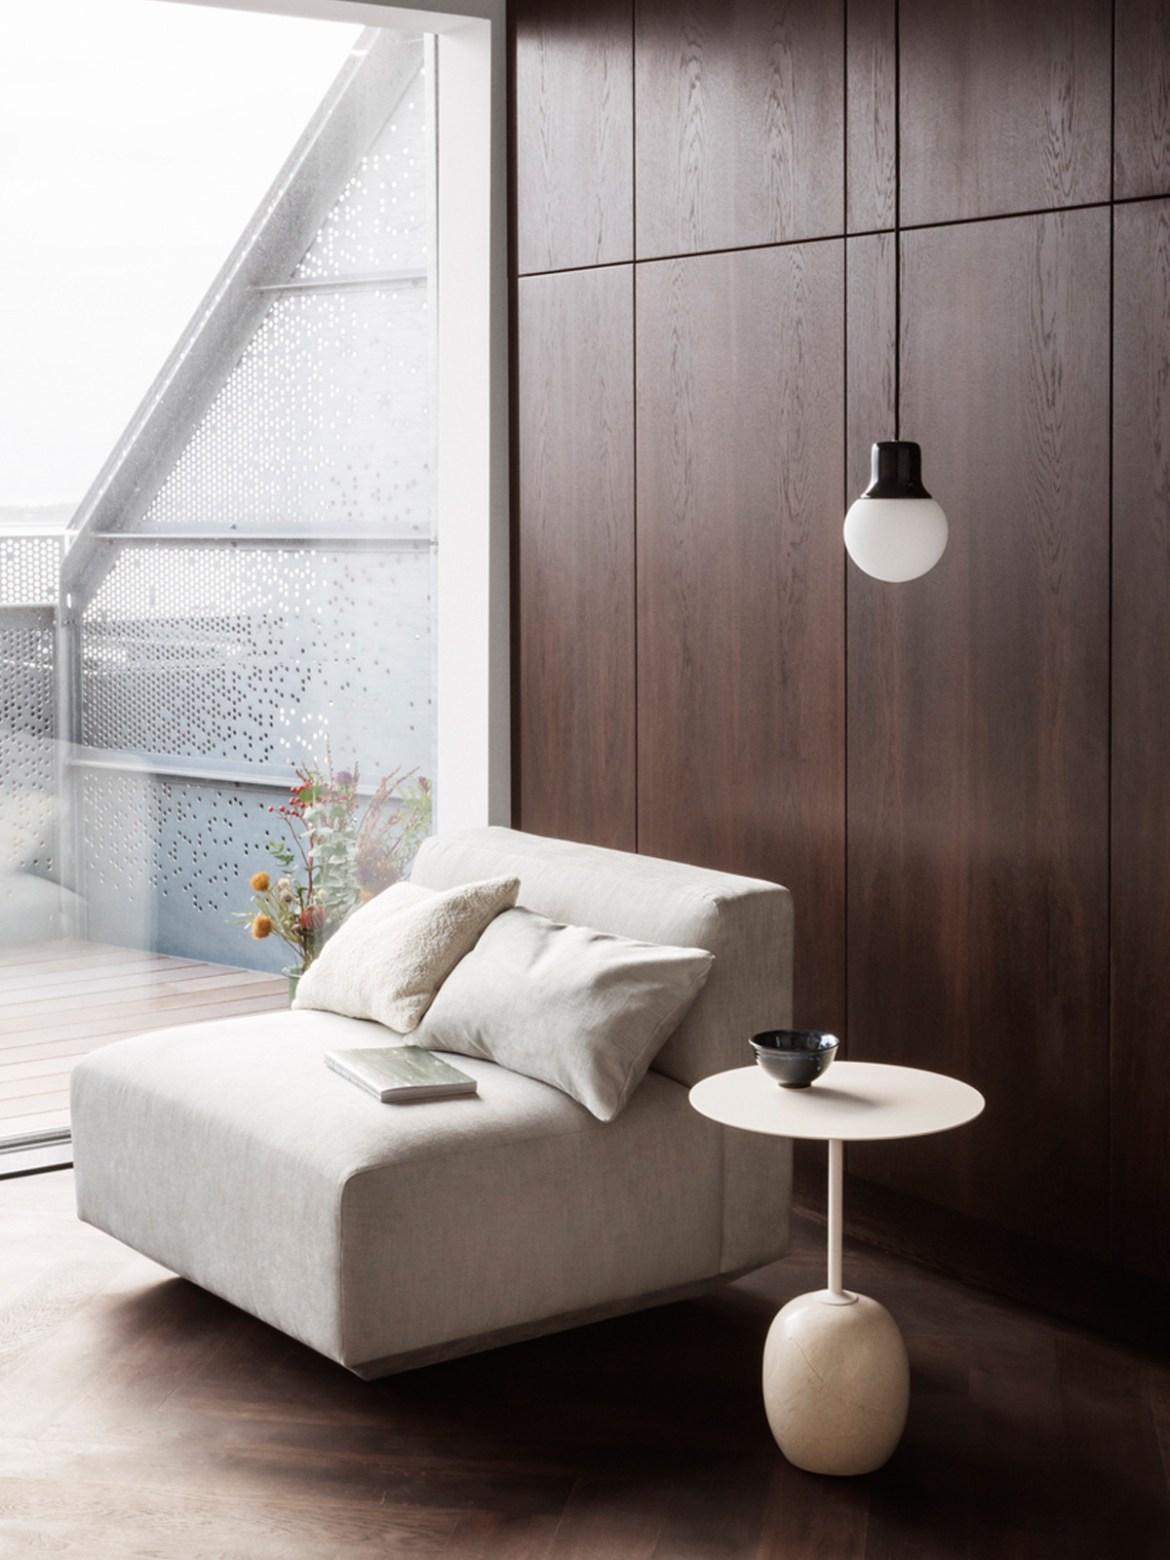 DesignOrt Blog: Designerleuchten aus Marmor Mass Light NA5 &tradition